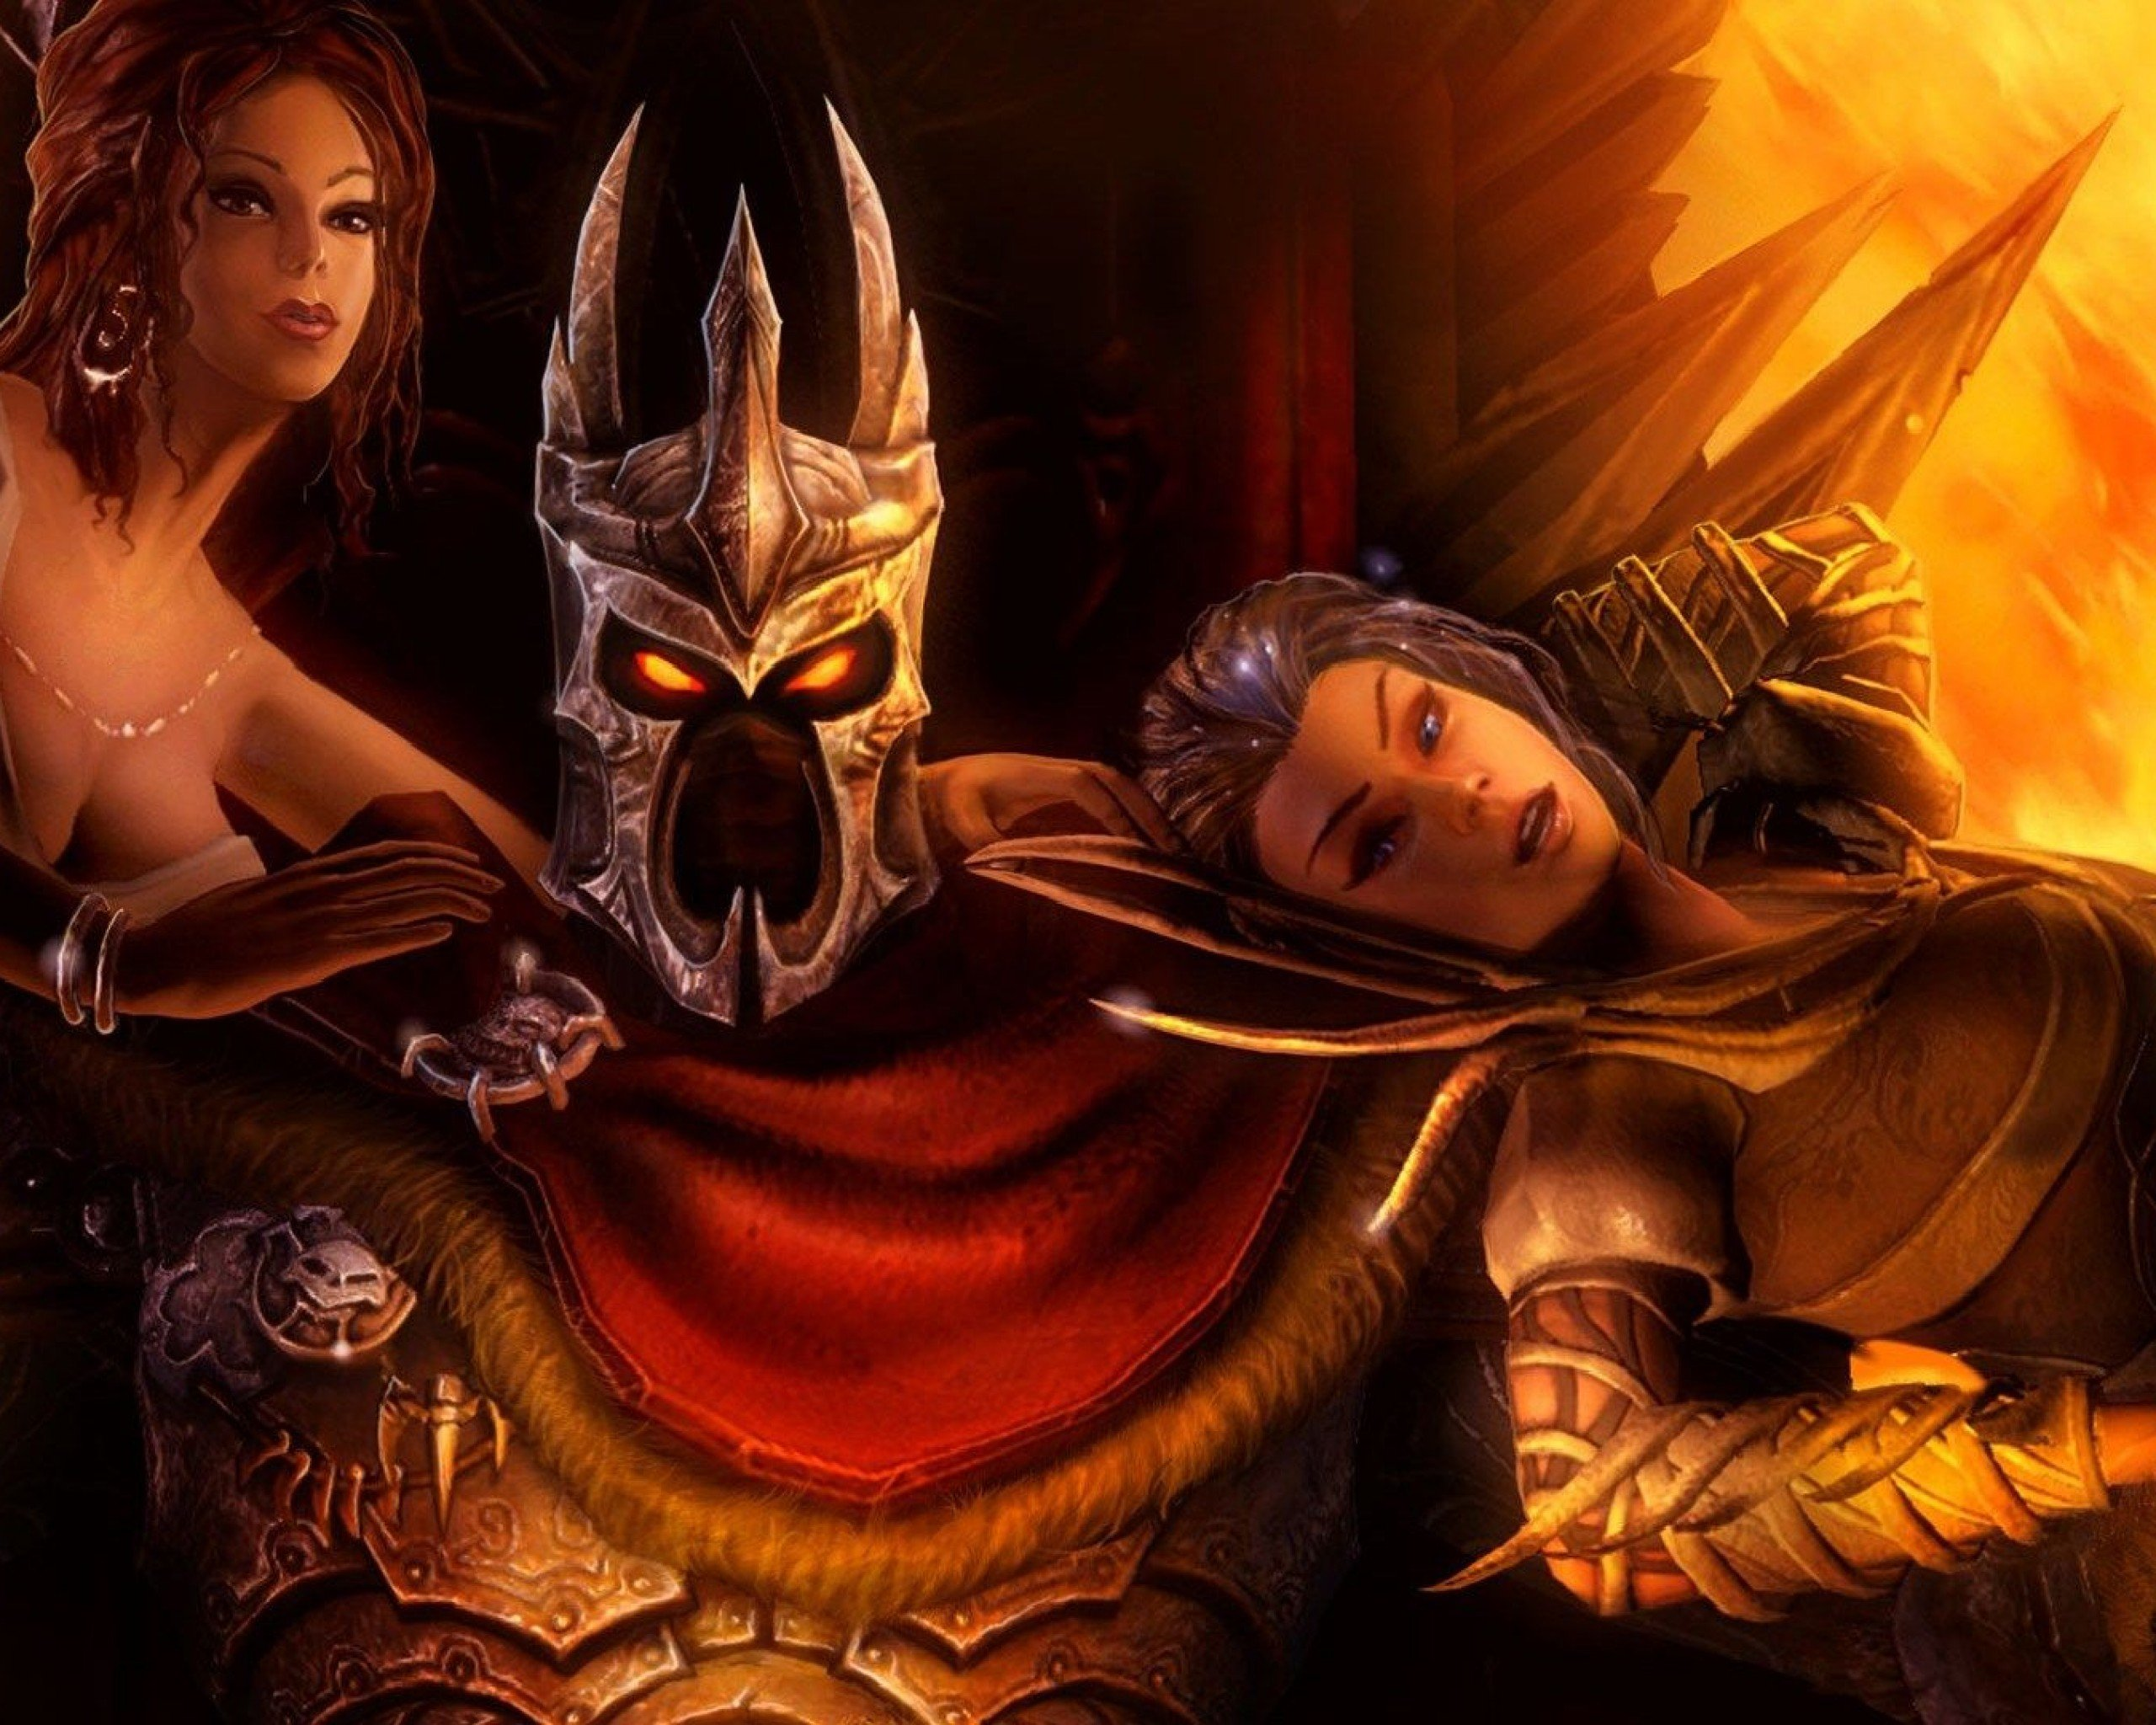 Ronnie James Dio Heavy Metal Fantasy Warrior Mask Armor Overlord 2 Game Character 2560x2048 Wallpaper Teahub Io